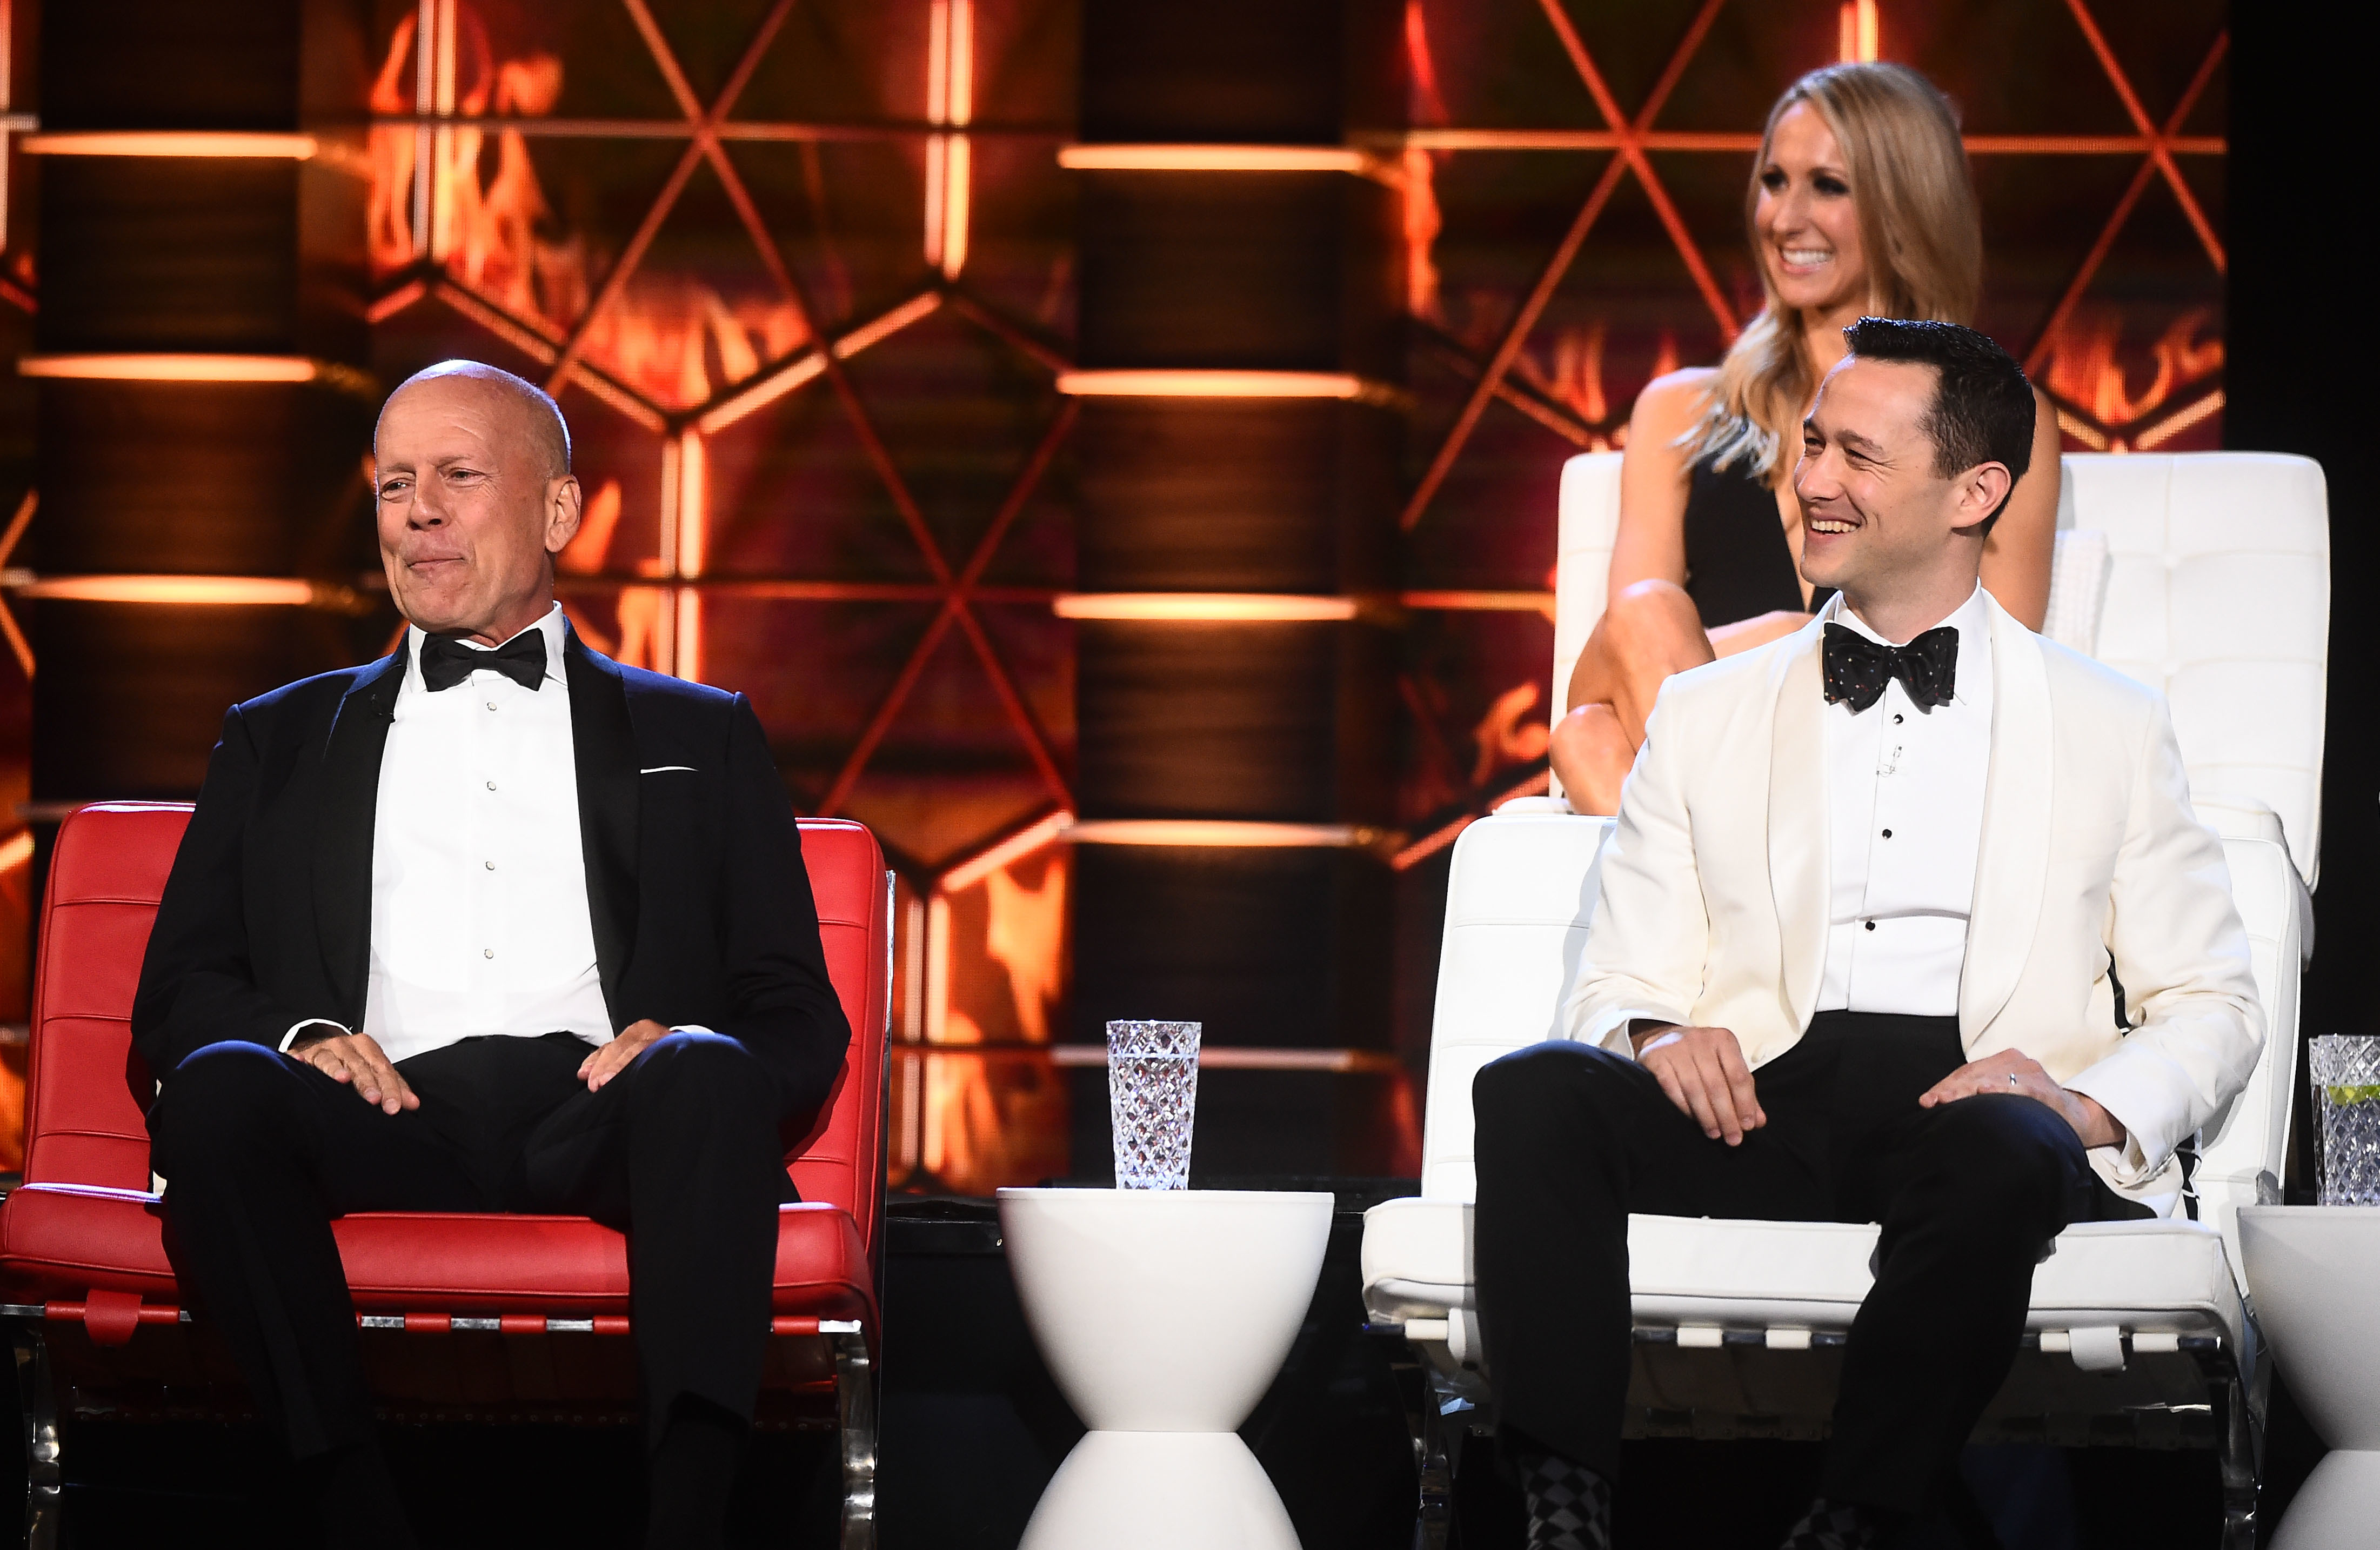 """Bruce Willis and Joseph Gordon Levitt sit on stage during the """"Comedy Central Roast of Bruce Willis"""" at the Hollywood Palladium on July 14, 2018."""